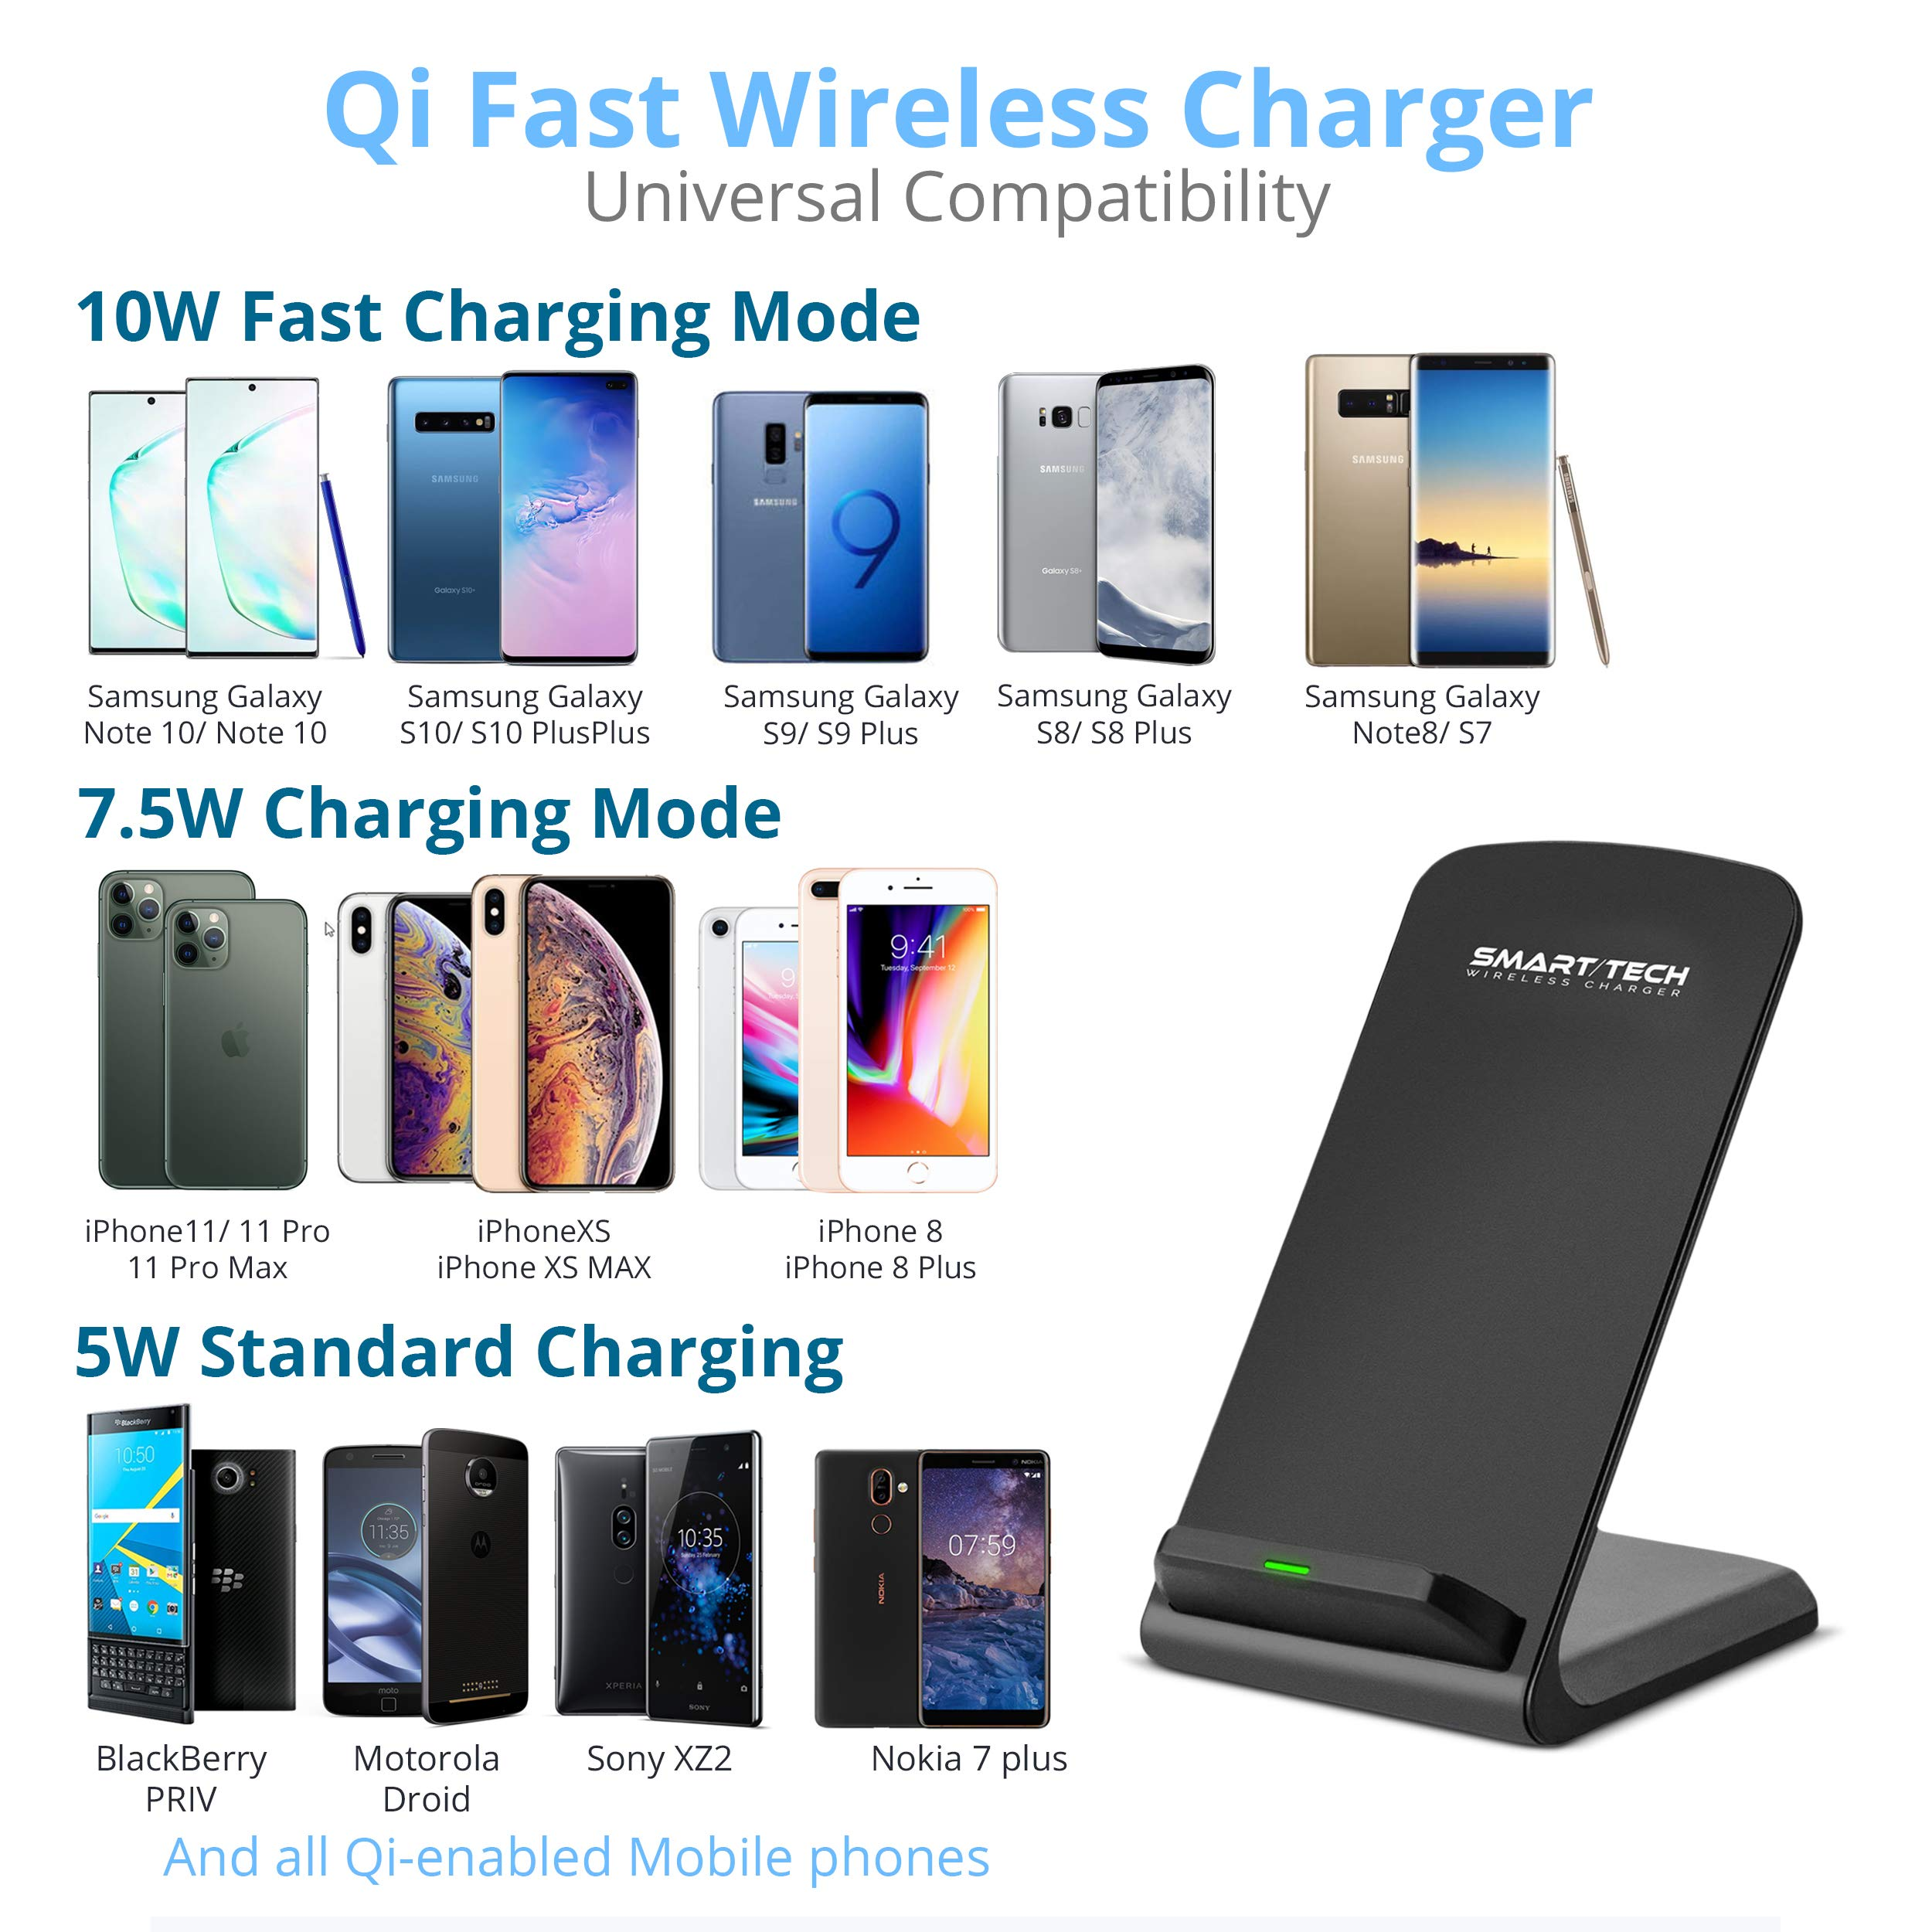 SmartTech Wireless Charger, Qi-Certified Fast Wireless Charging Stand 10W for Samsung Galaxy S10 /S9/S8/S7, Note 10/9, 7.5W PowerWave for iPhone 11/11 Pro Max/X/XS Max/XR/XS/8 Plus (No AC Adapter)